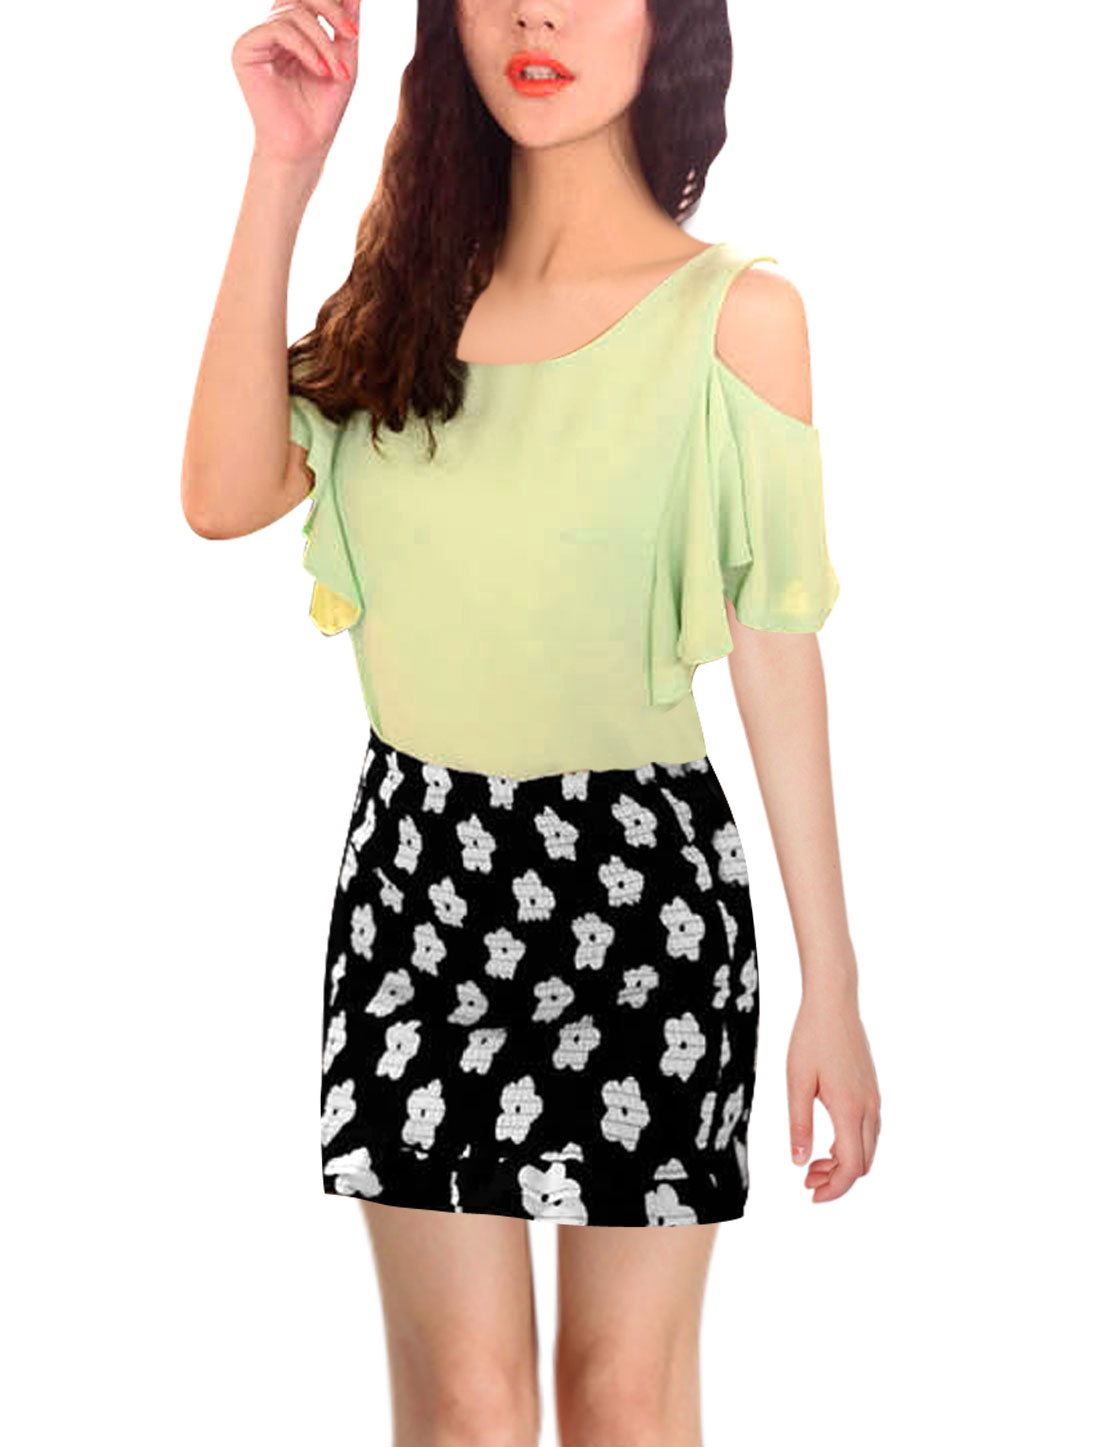 Lady Natural Waist Stretchy Ruched Floral Pattern Black Skirt XS